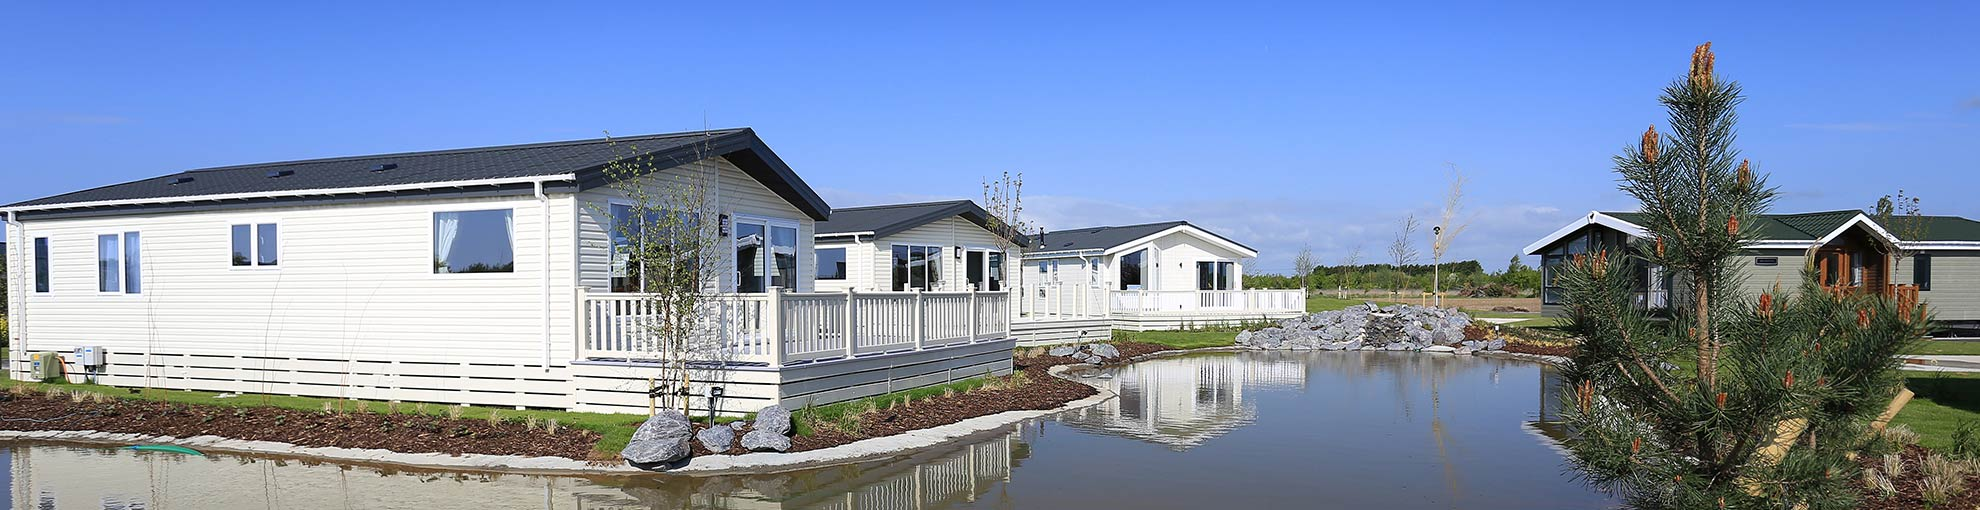 Lakeside lodges.